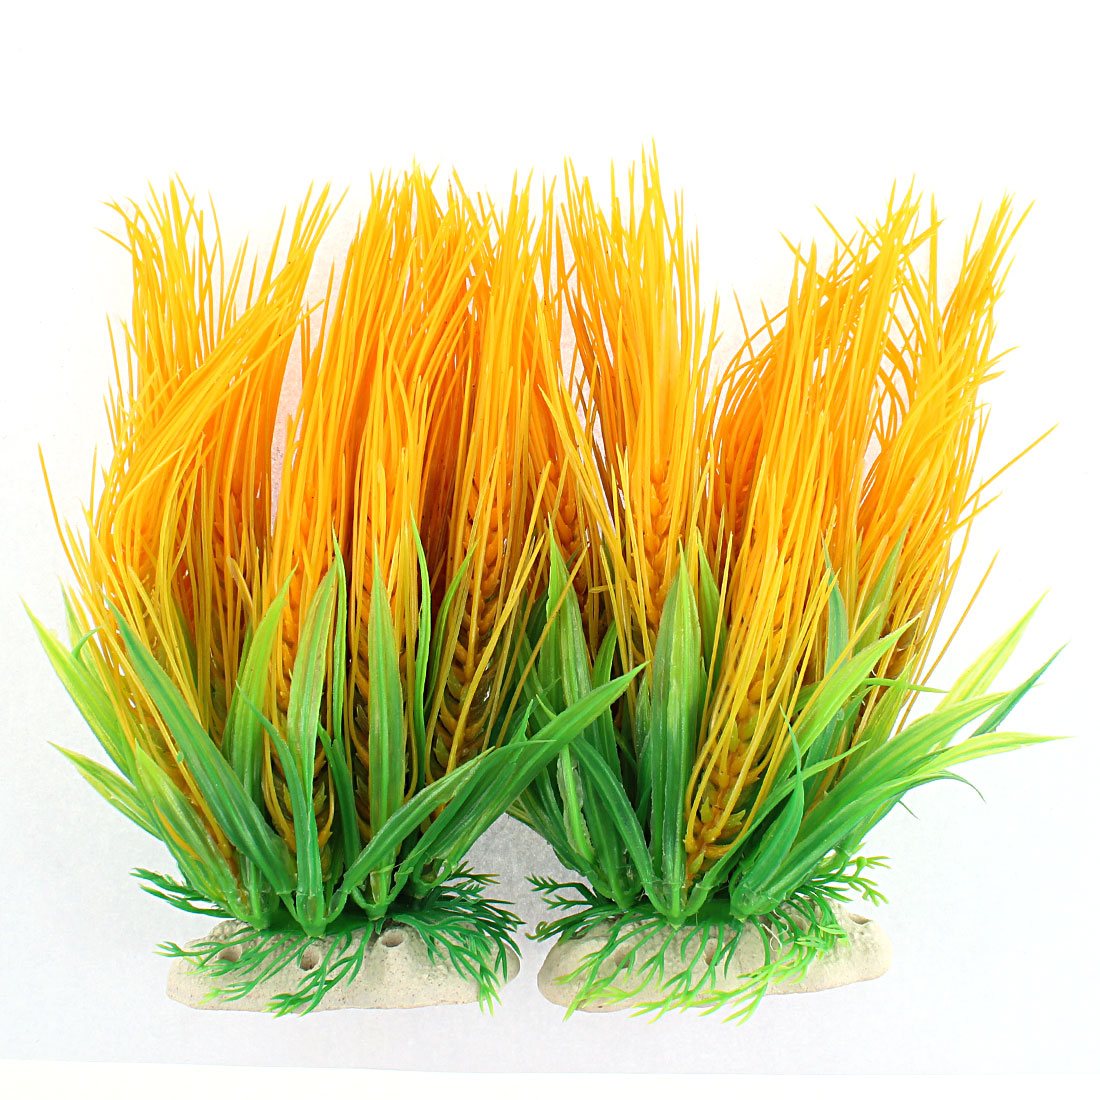 Aquarium Plastic Manmade Needle Shaped Grass Plant Decor Green Orange 2PCS